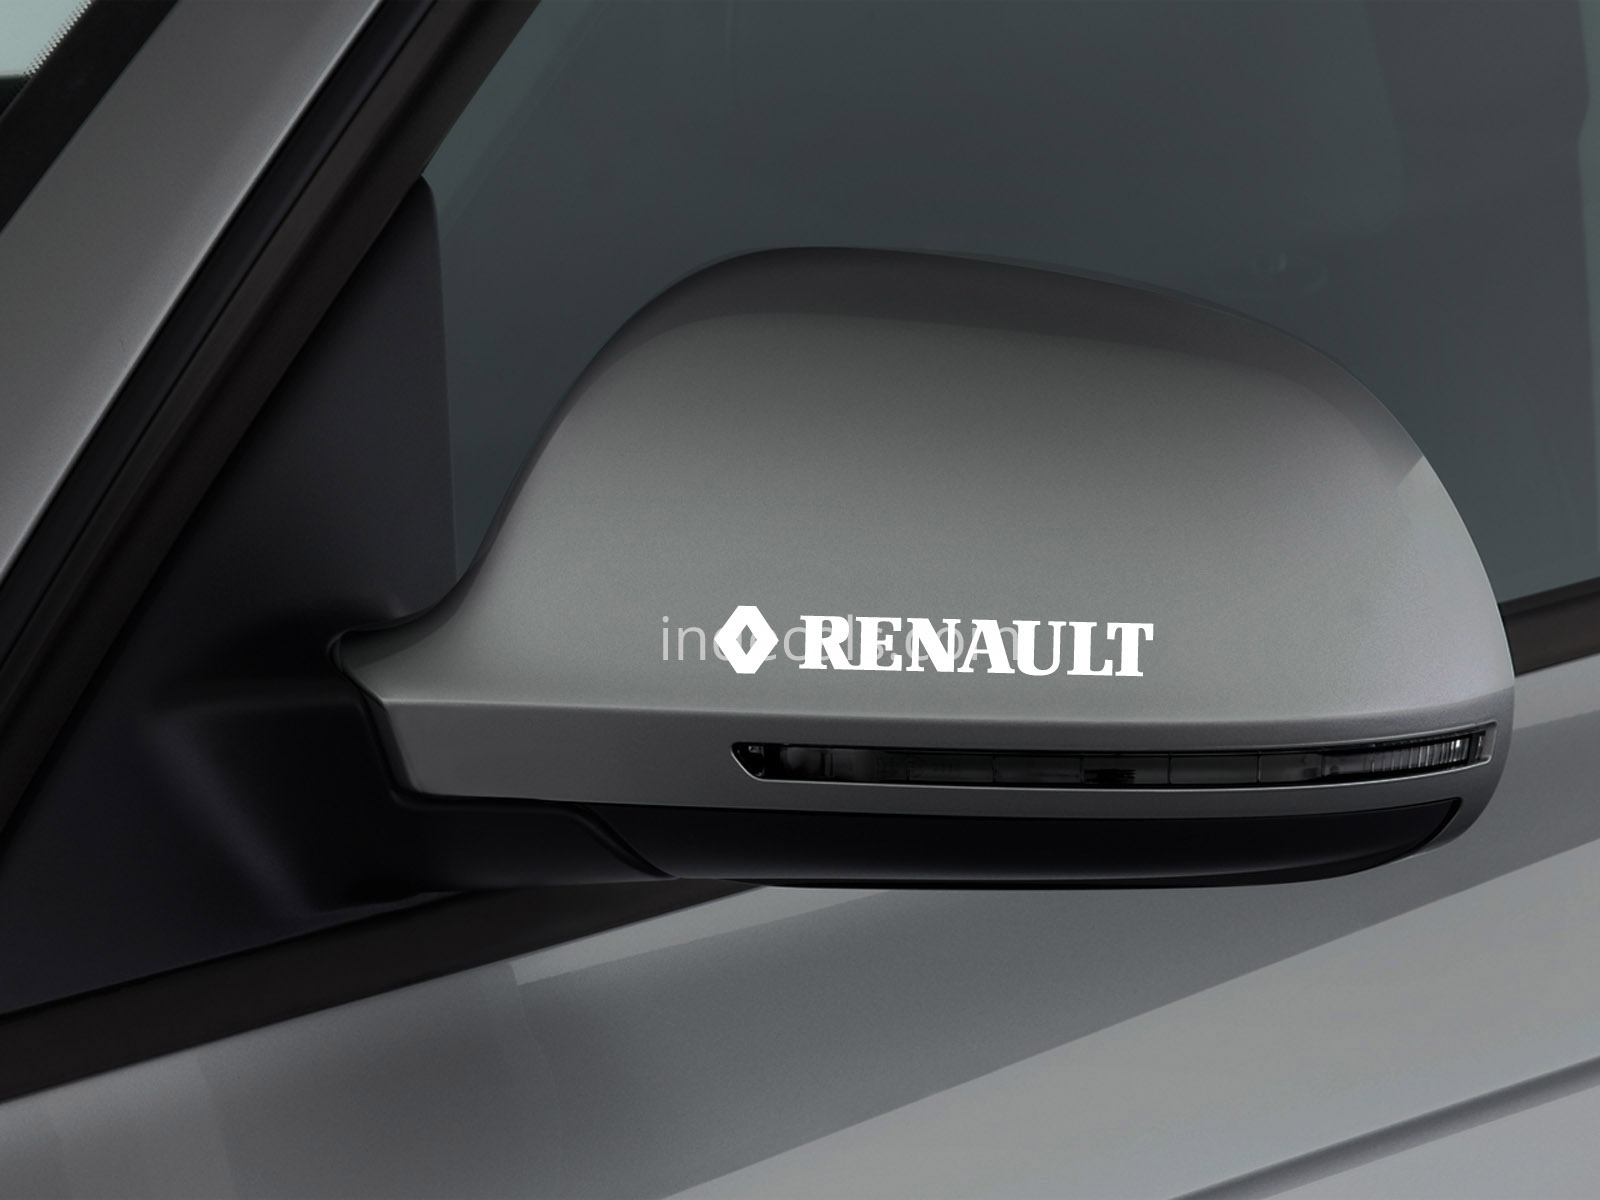 3 x Renault Stickers for Mirror - White